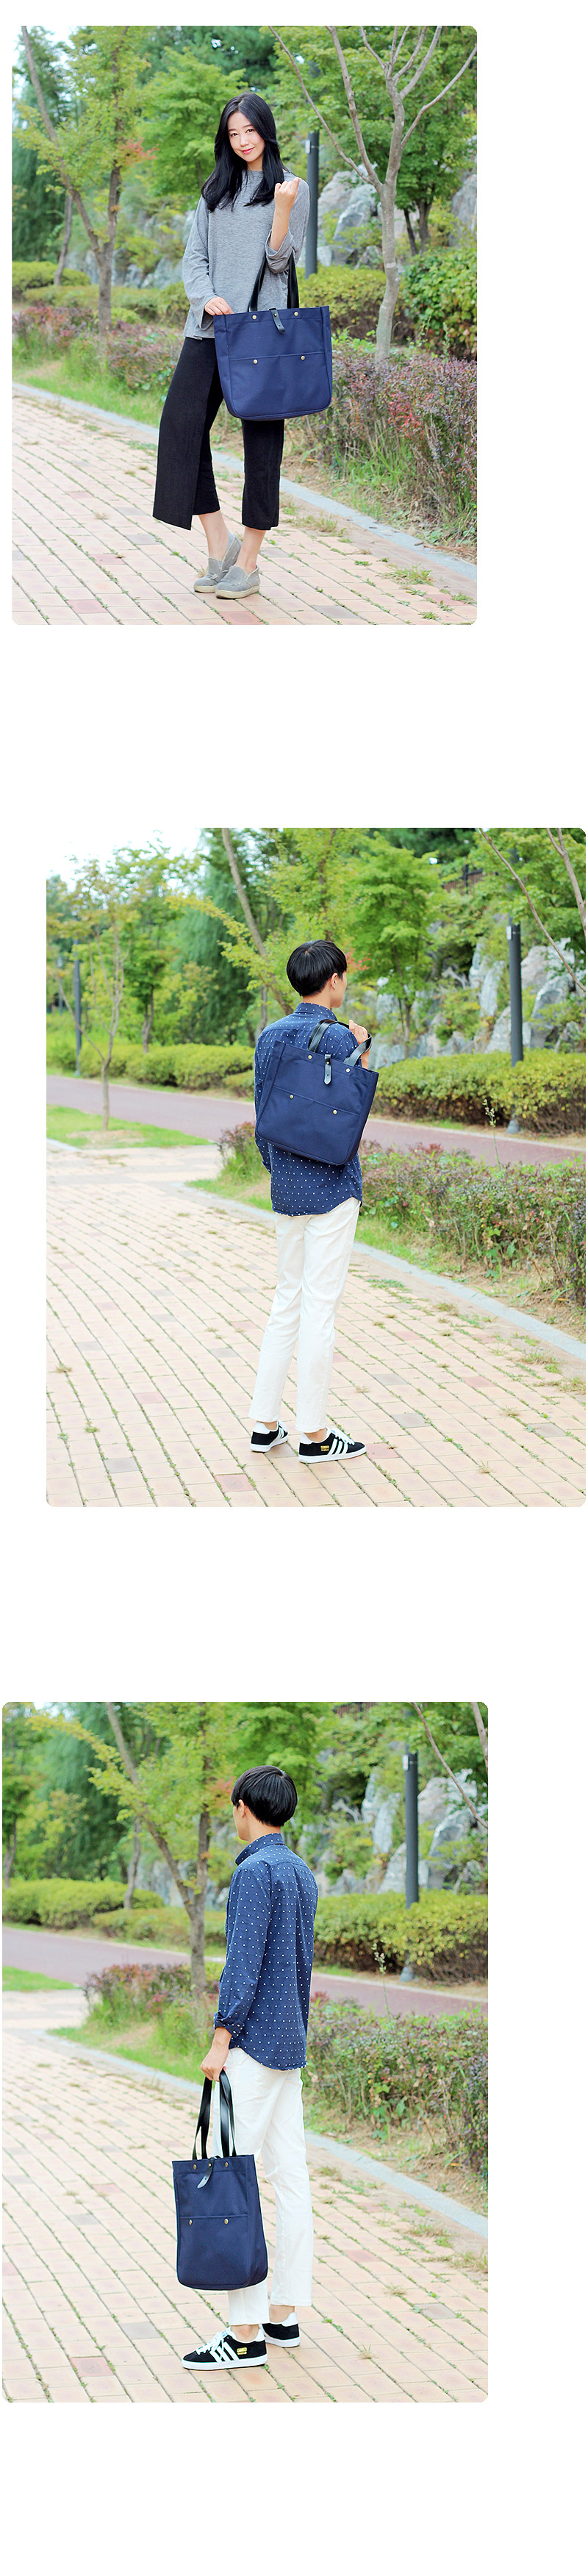 Shoulder&tote bag no.K41634view